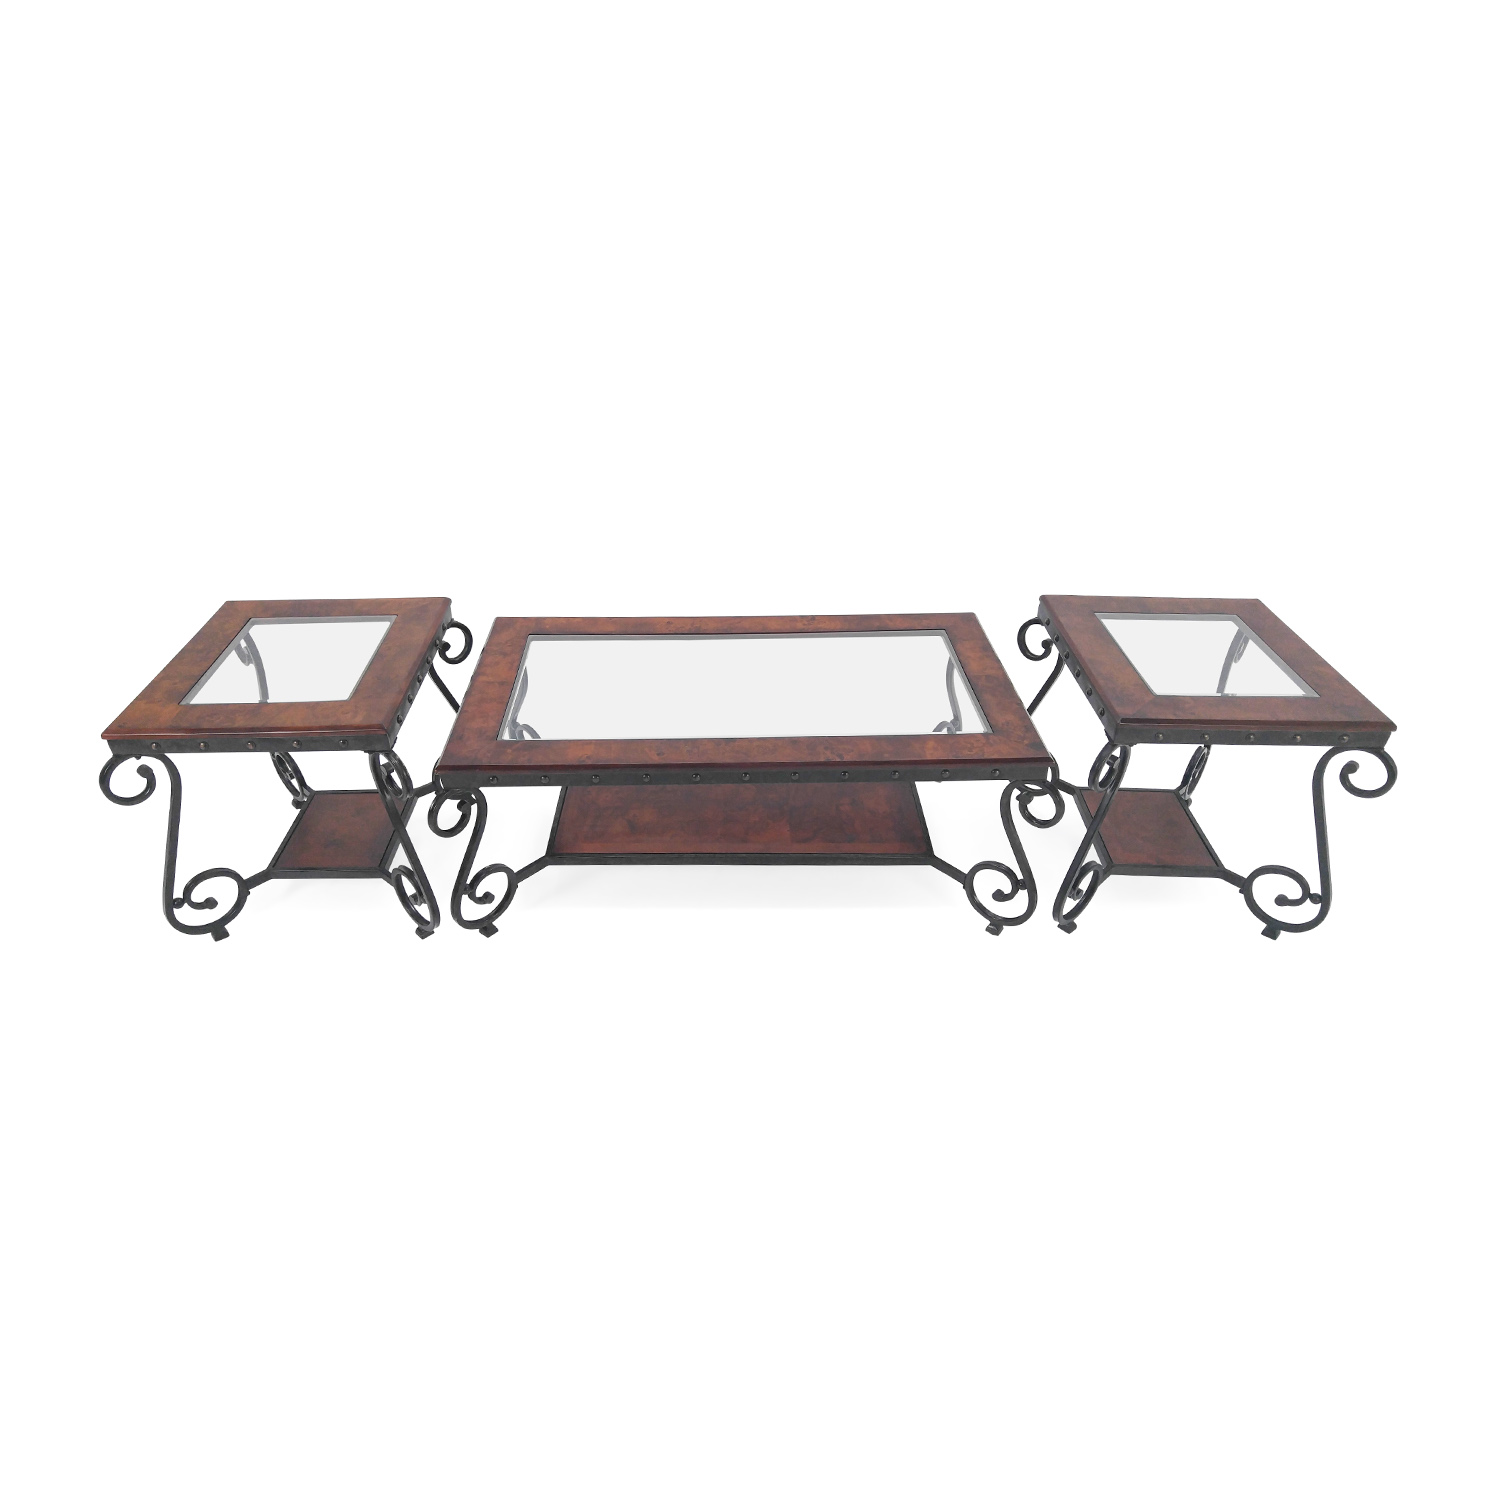 Bobs Furniture Bob's Coffee Table Set Tables